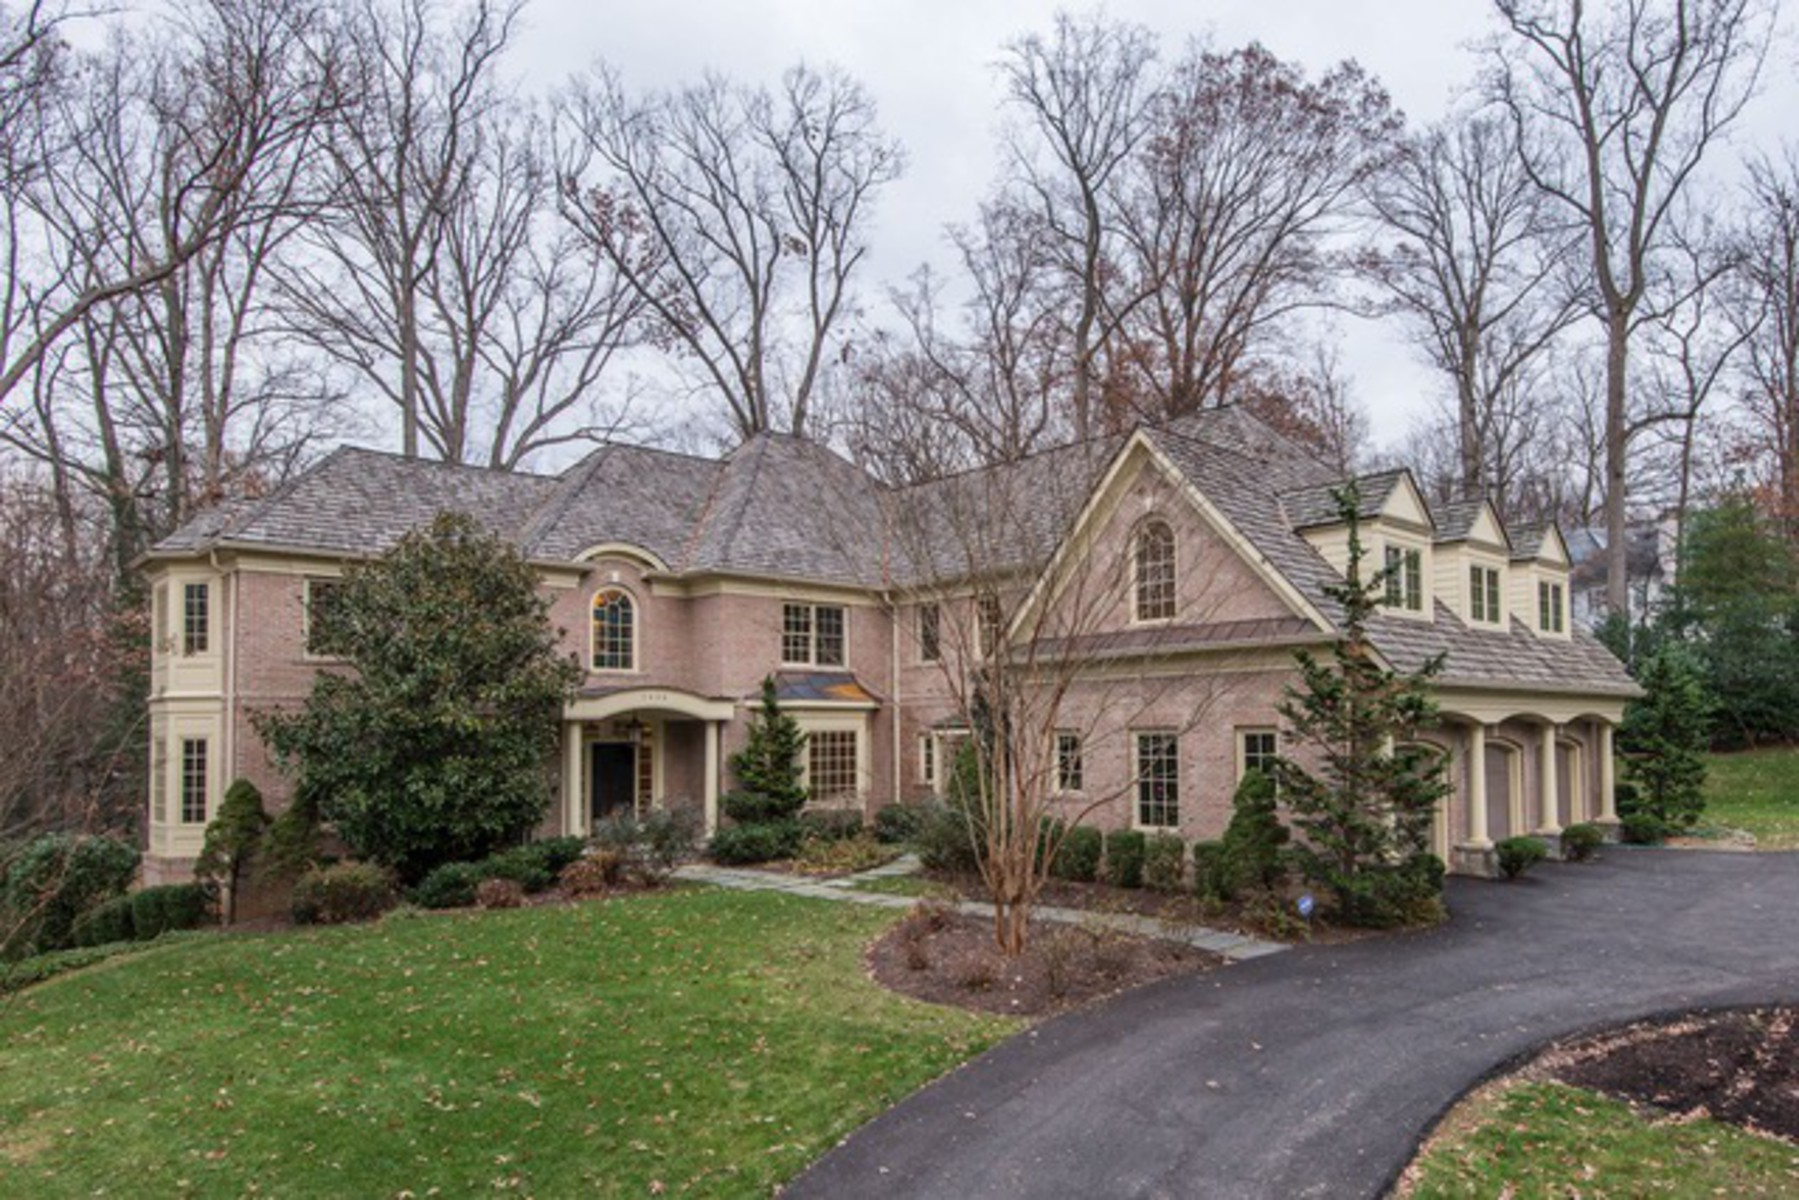 Single Family Home for Sale at 7426 Dulany Drive, Mclean McLean, Virginia 22101 United States